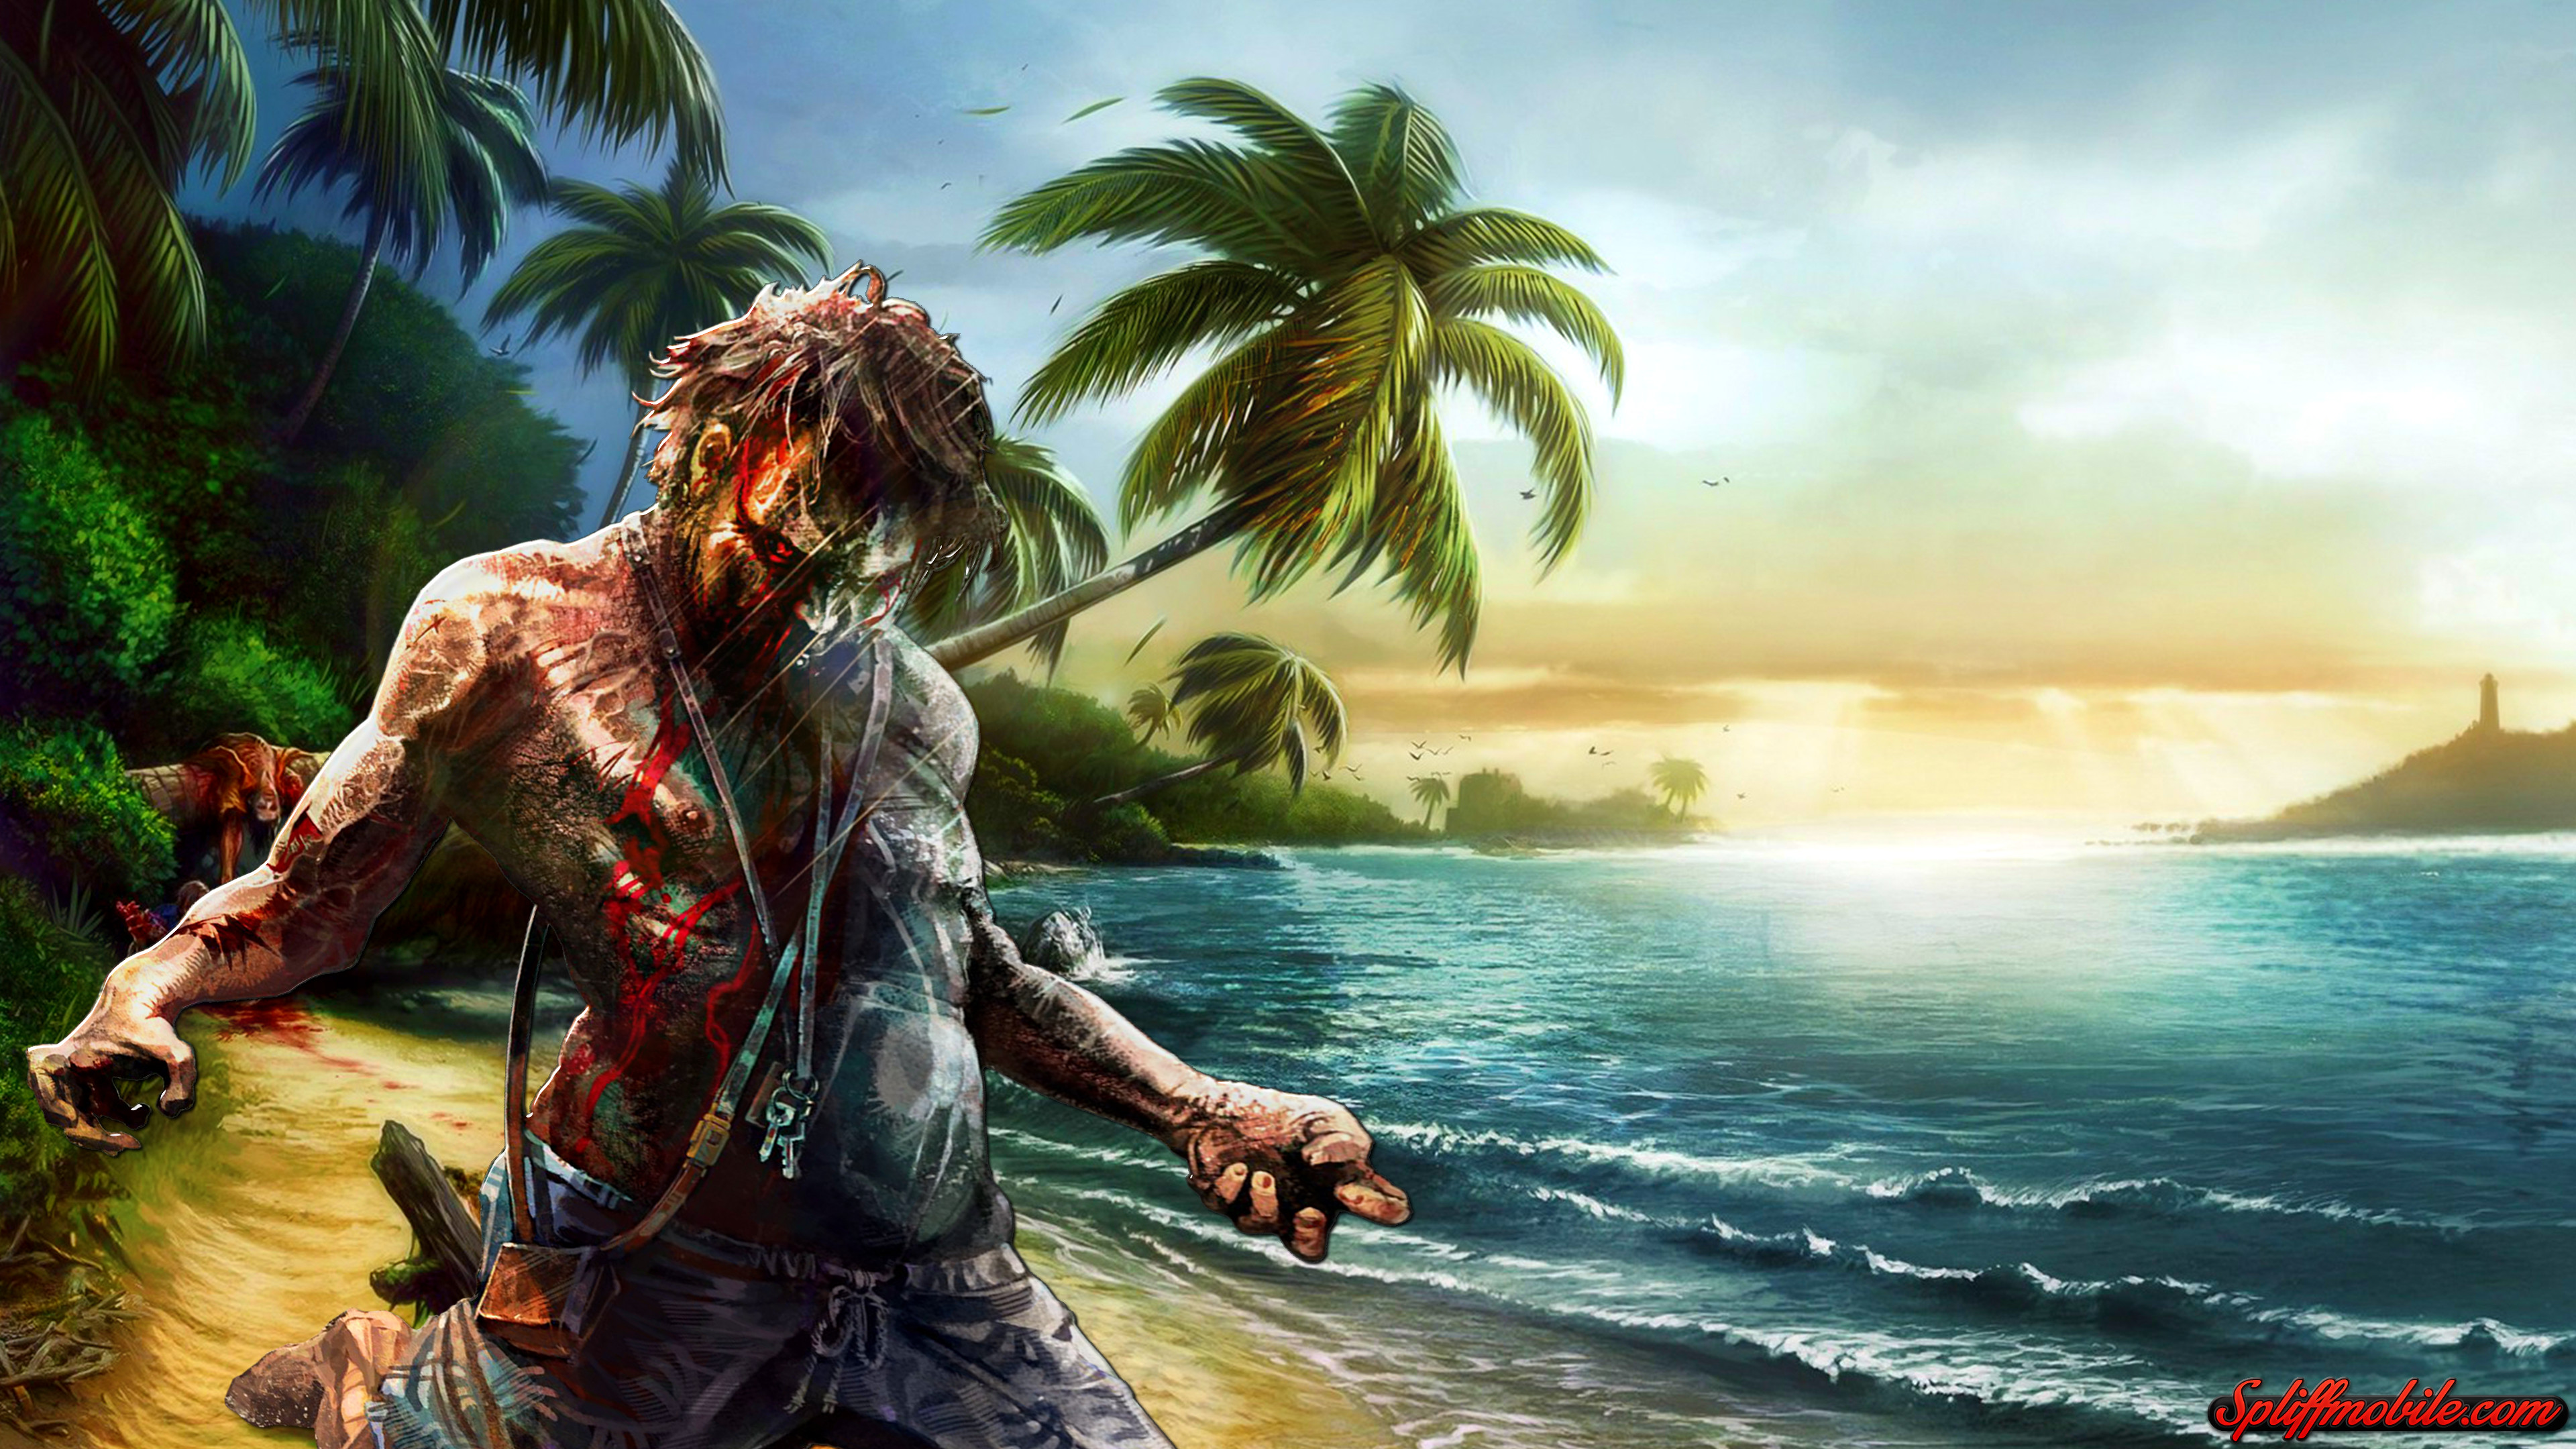 Res: 3840x2160, Images In High Quality: Dead Island Wallpapers by Carrol Stahlman, 17/04/